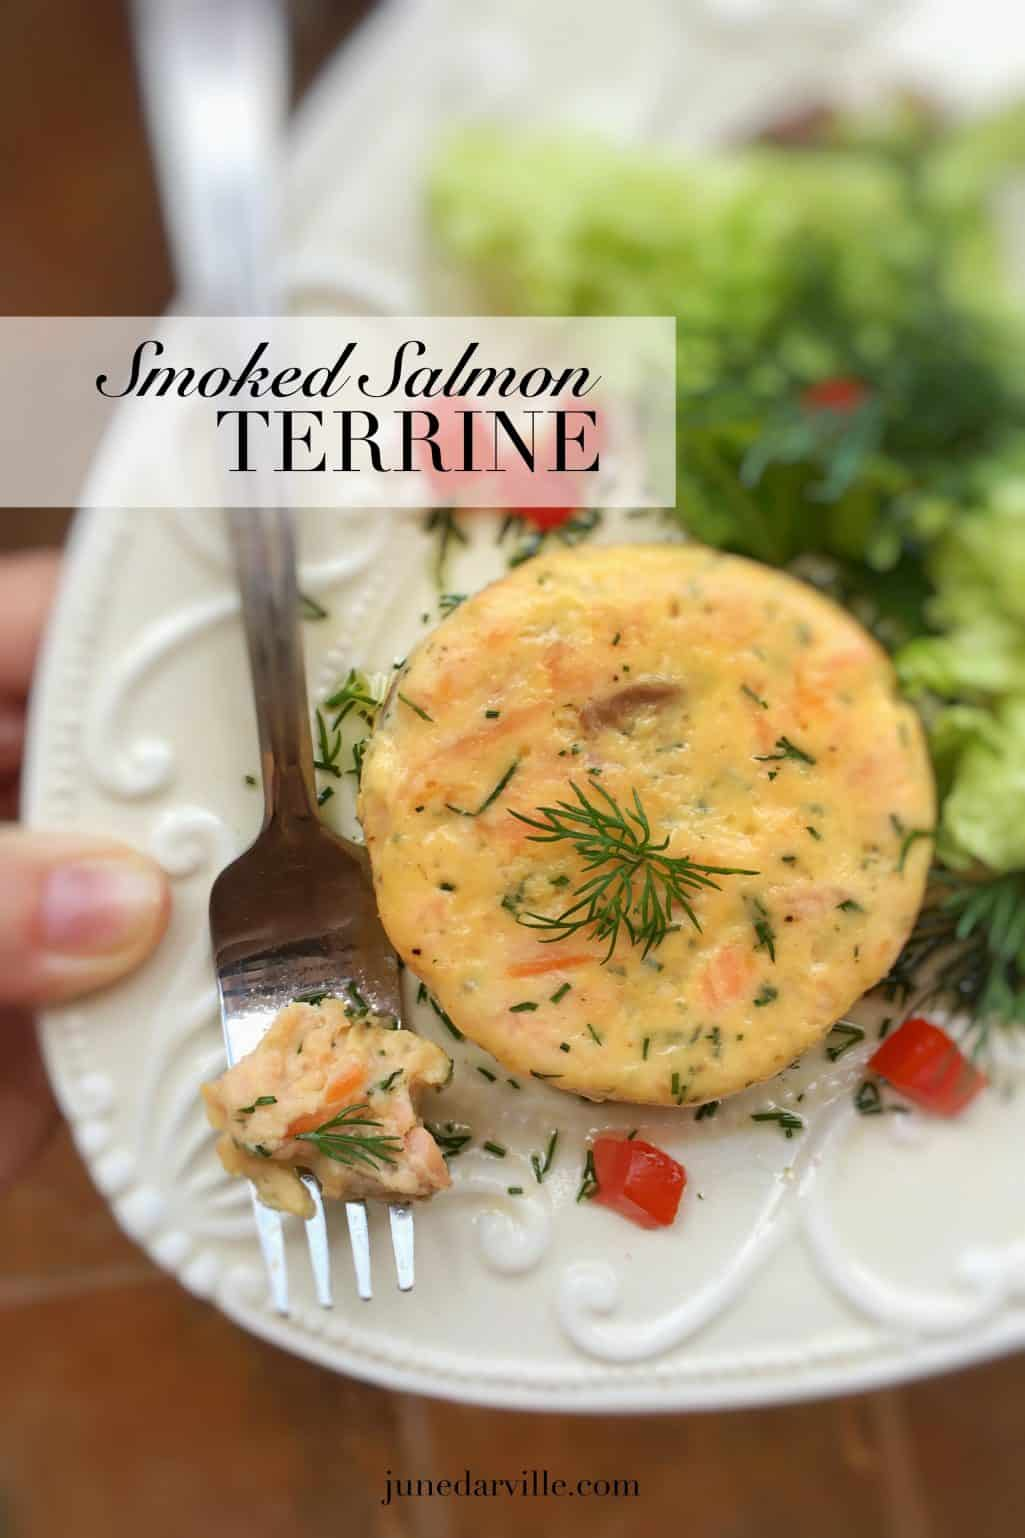 Watch my video of how I'm preparing a smoked salmon terrine in my KitchenAid Stand Mixer Mini! This fish starter is easy to make in advance...